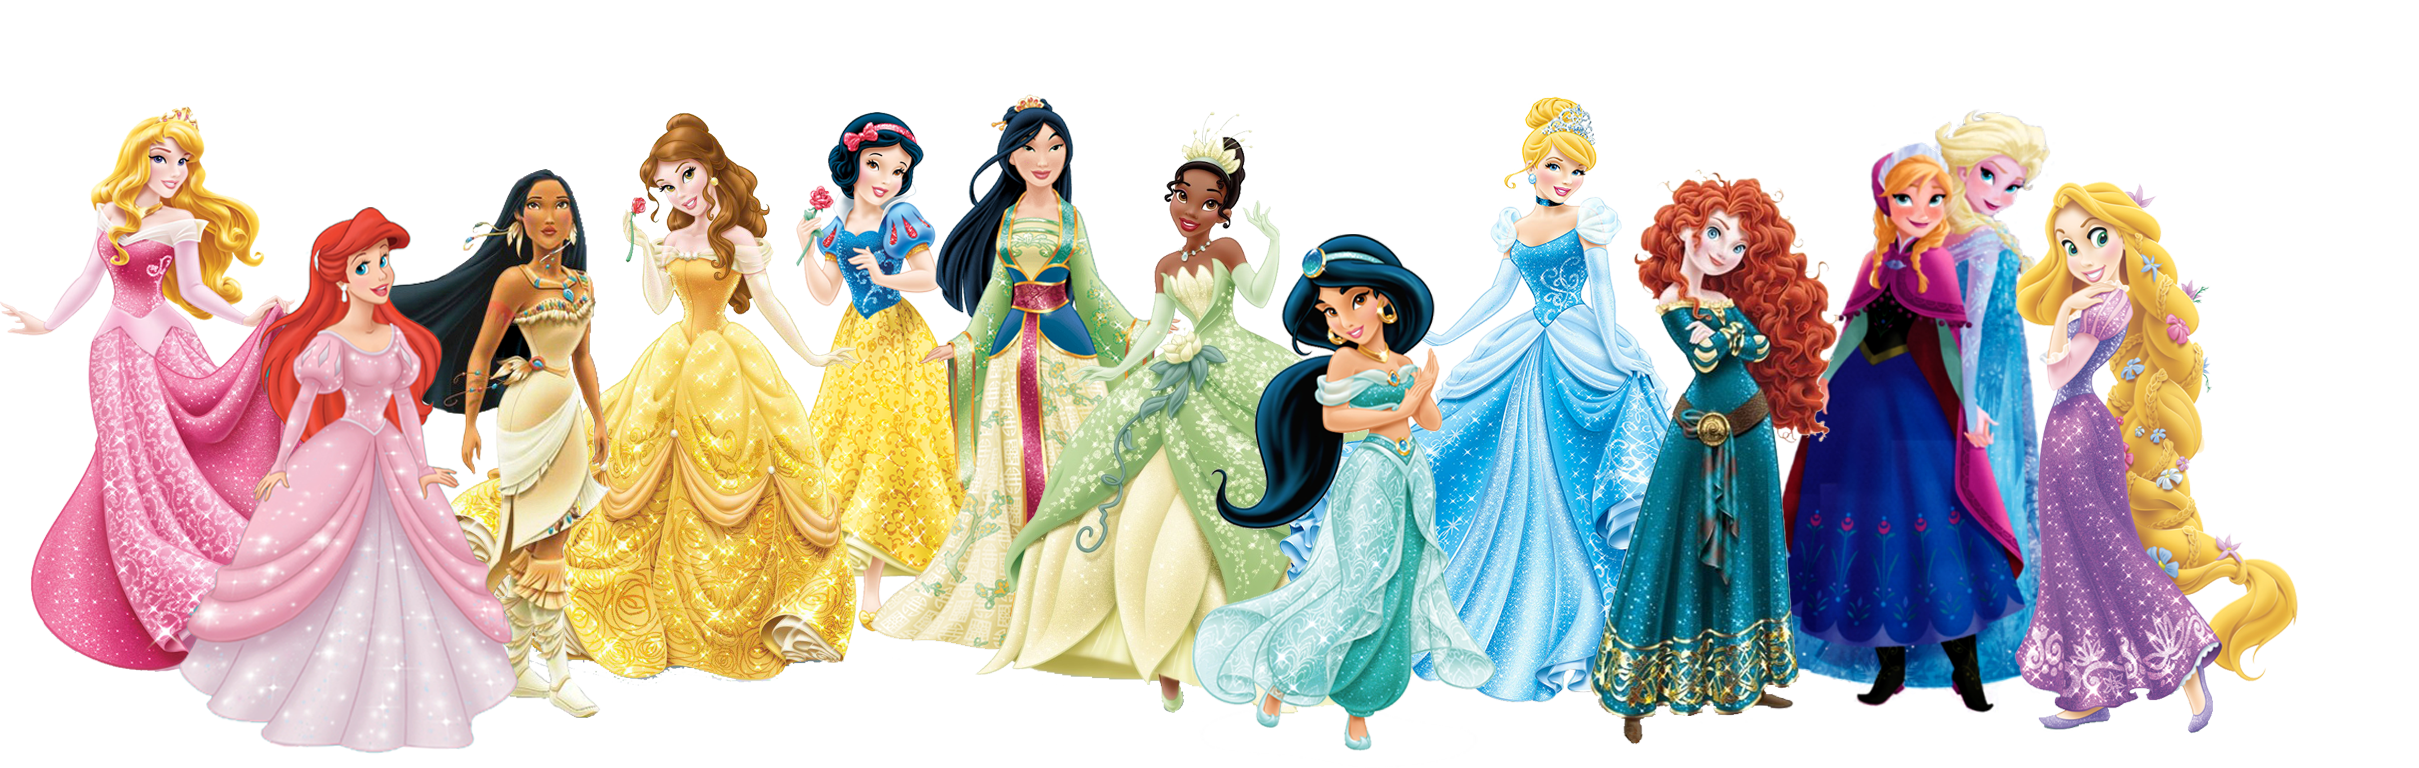 disney princesses png picture 21205 transparentpng